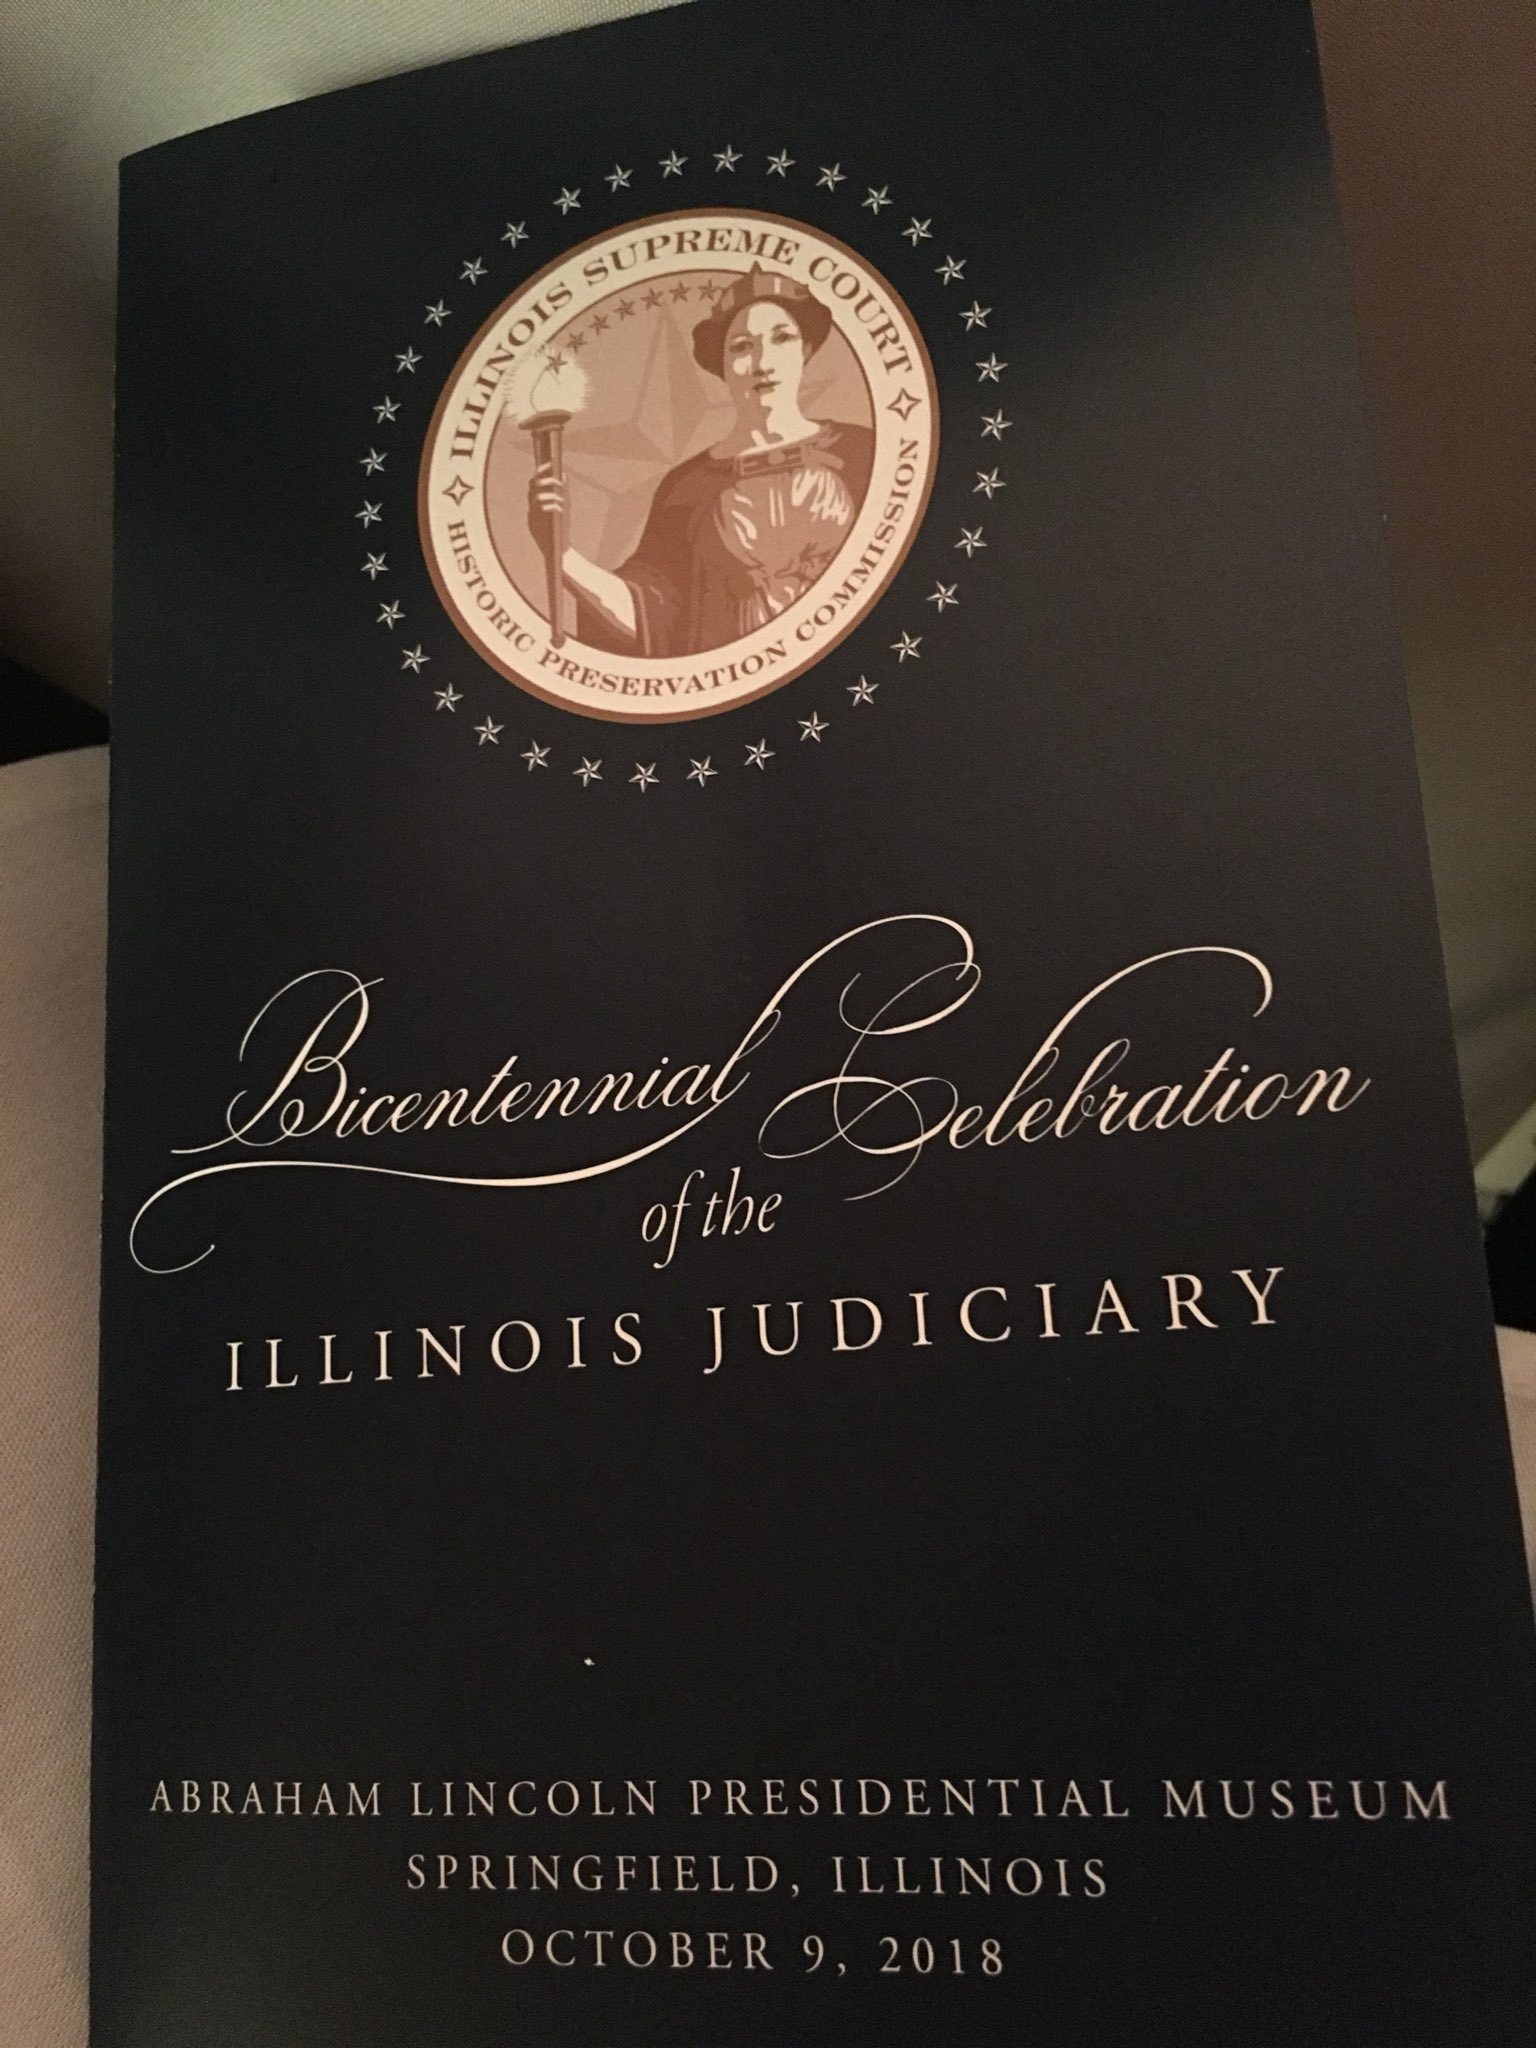 The Bicentennial of the Illinois Judiciary Gala is being held at the Abraham Lincoln Presidential Museum in Springfield. #ILSupremeCourt200 https://t.co/kjYxnJ2Q7T